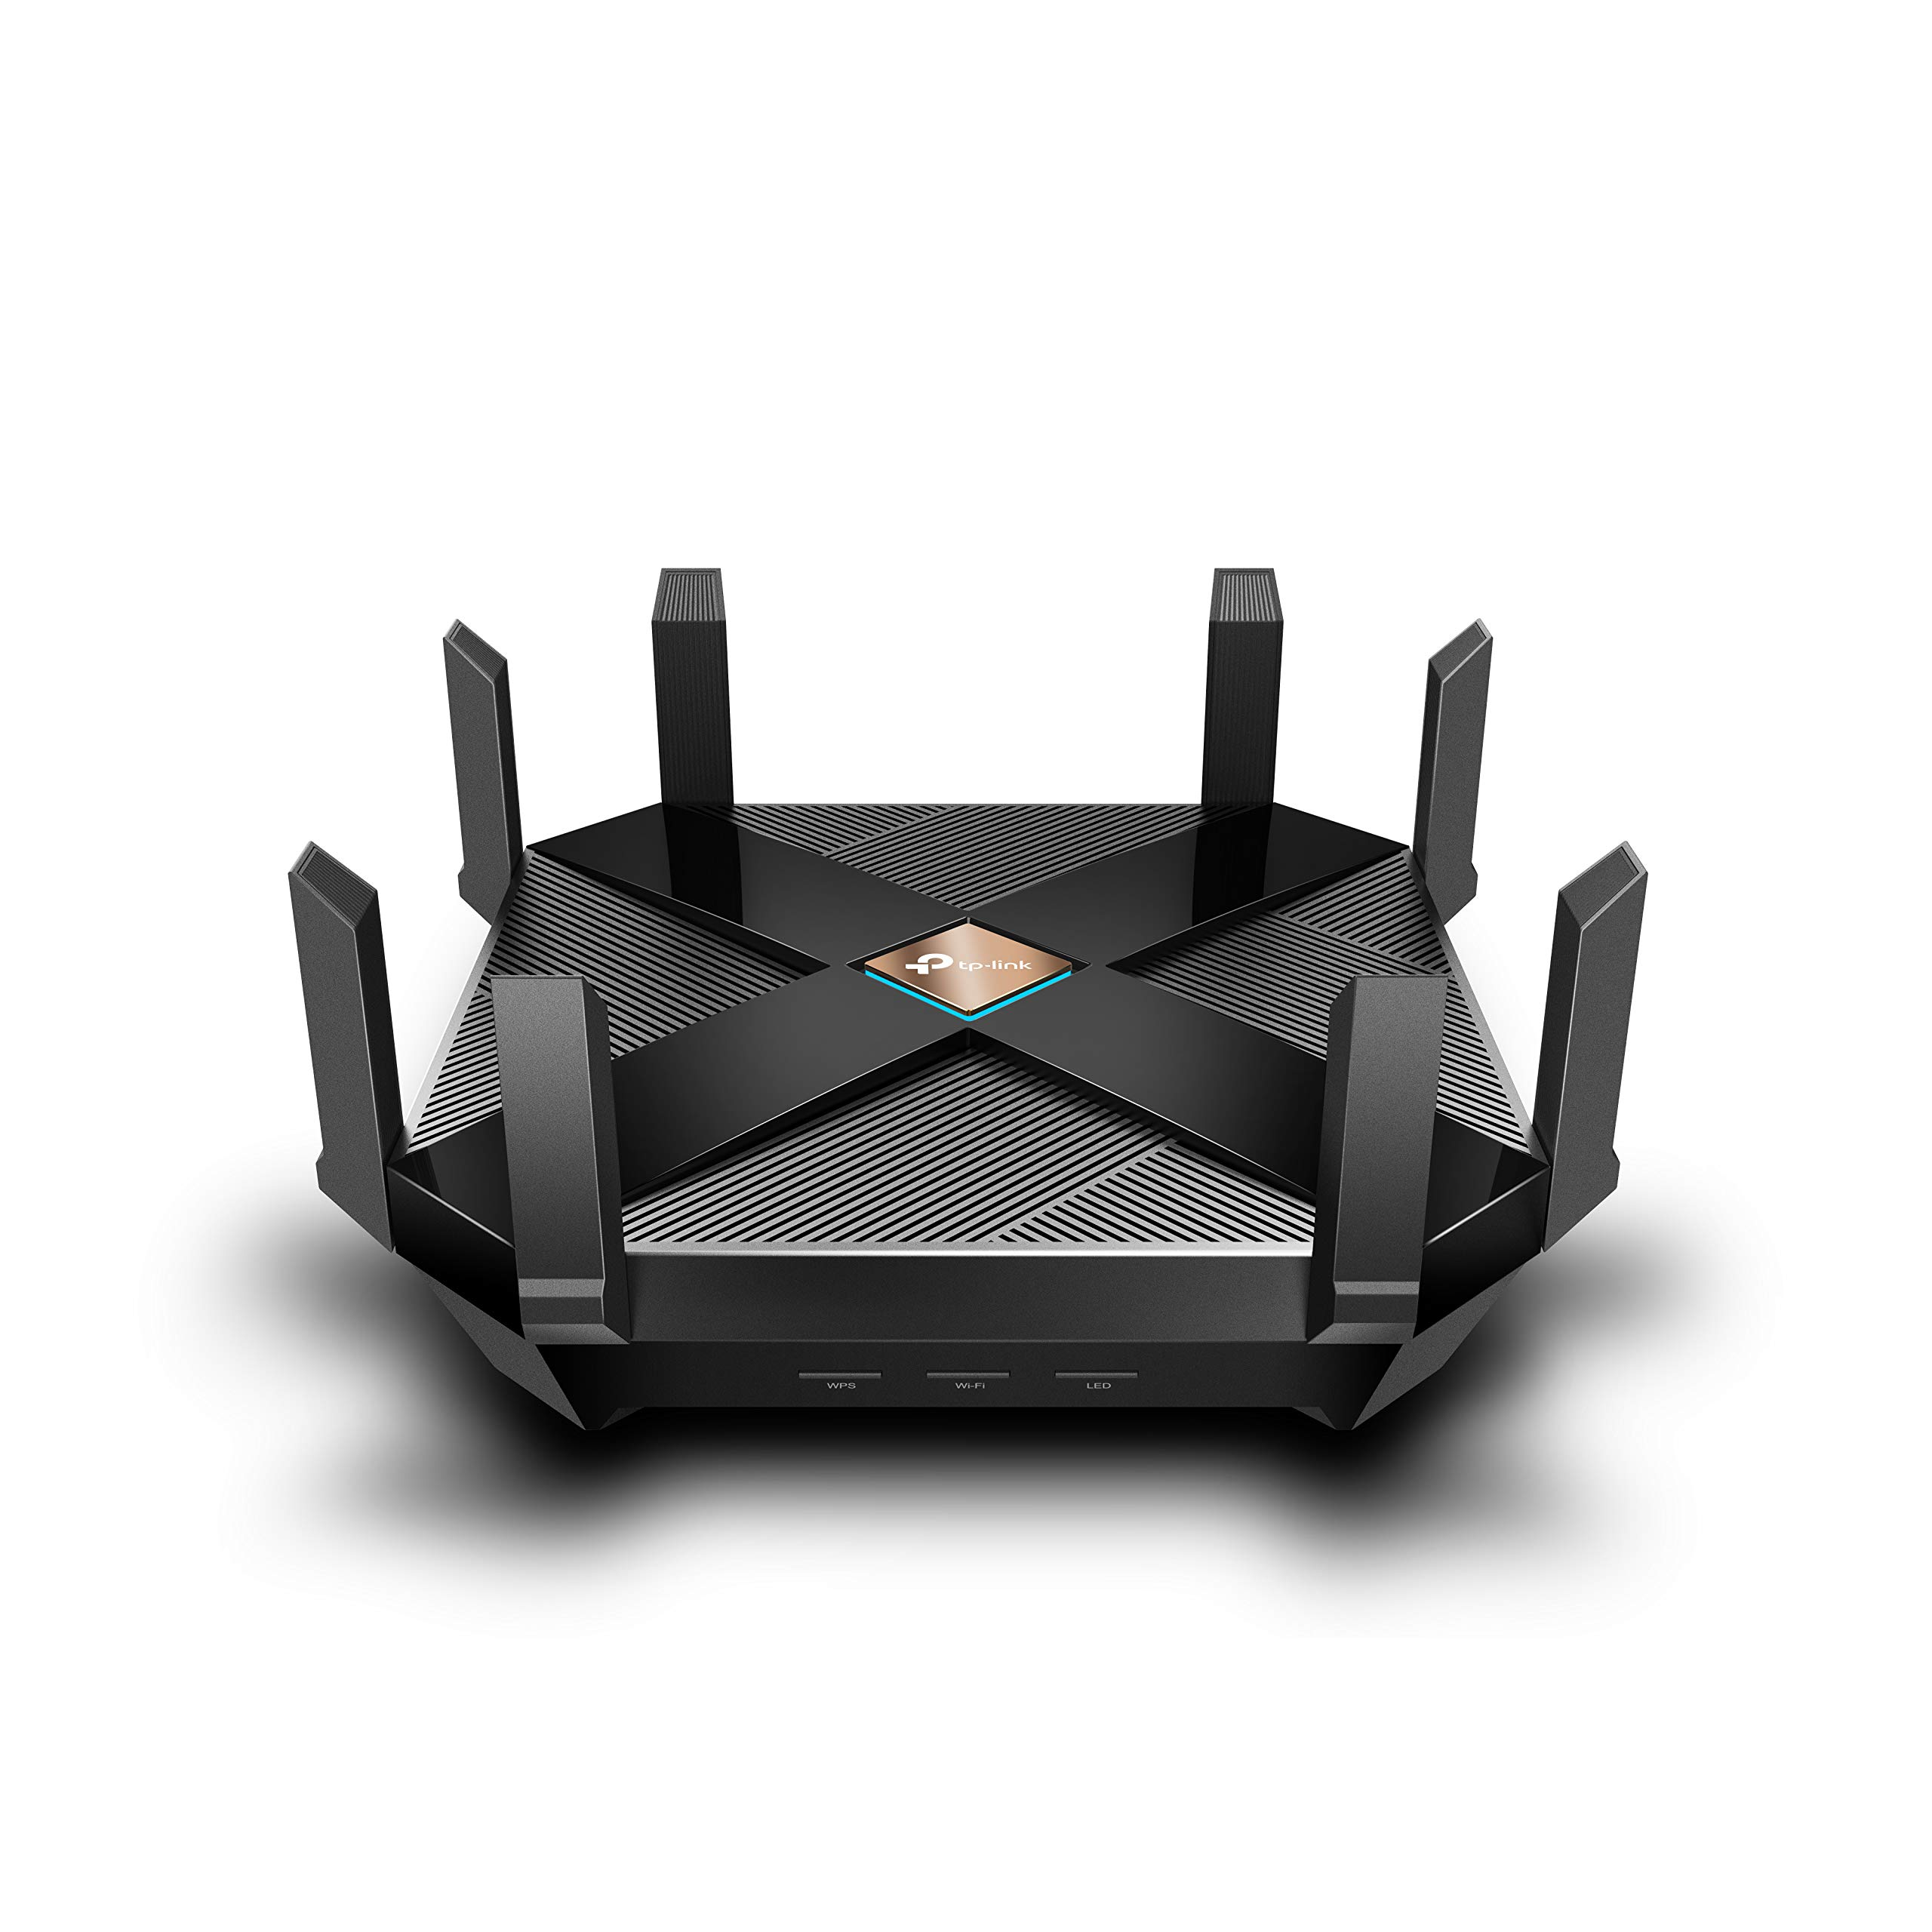 TP-Link WiFi 6 AX6000 8-Stream Smart WiFi Router - Next-Gen 802.11ax, 2.5G WAN Port, 8 Gigabit LAN Ports, MU-MIMO, 1.8GHz Quad-Core CPU, USB 3.0 Ports, Homecare Support(Archer AX6000) by TP-LINK